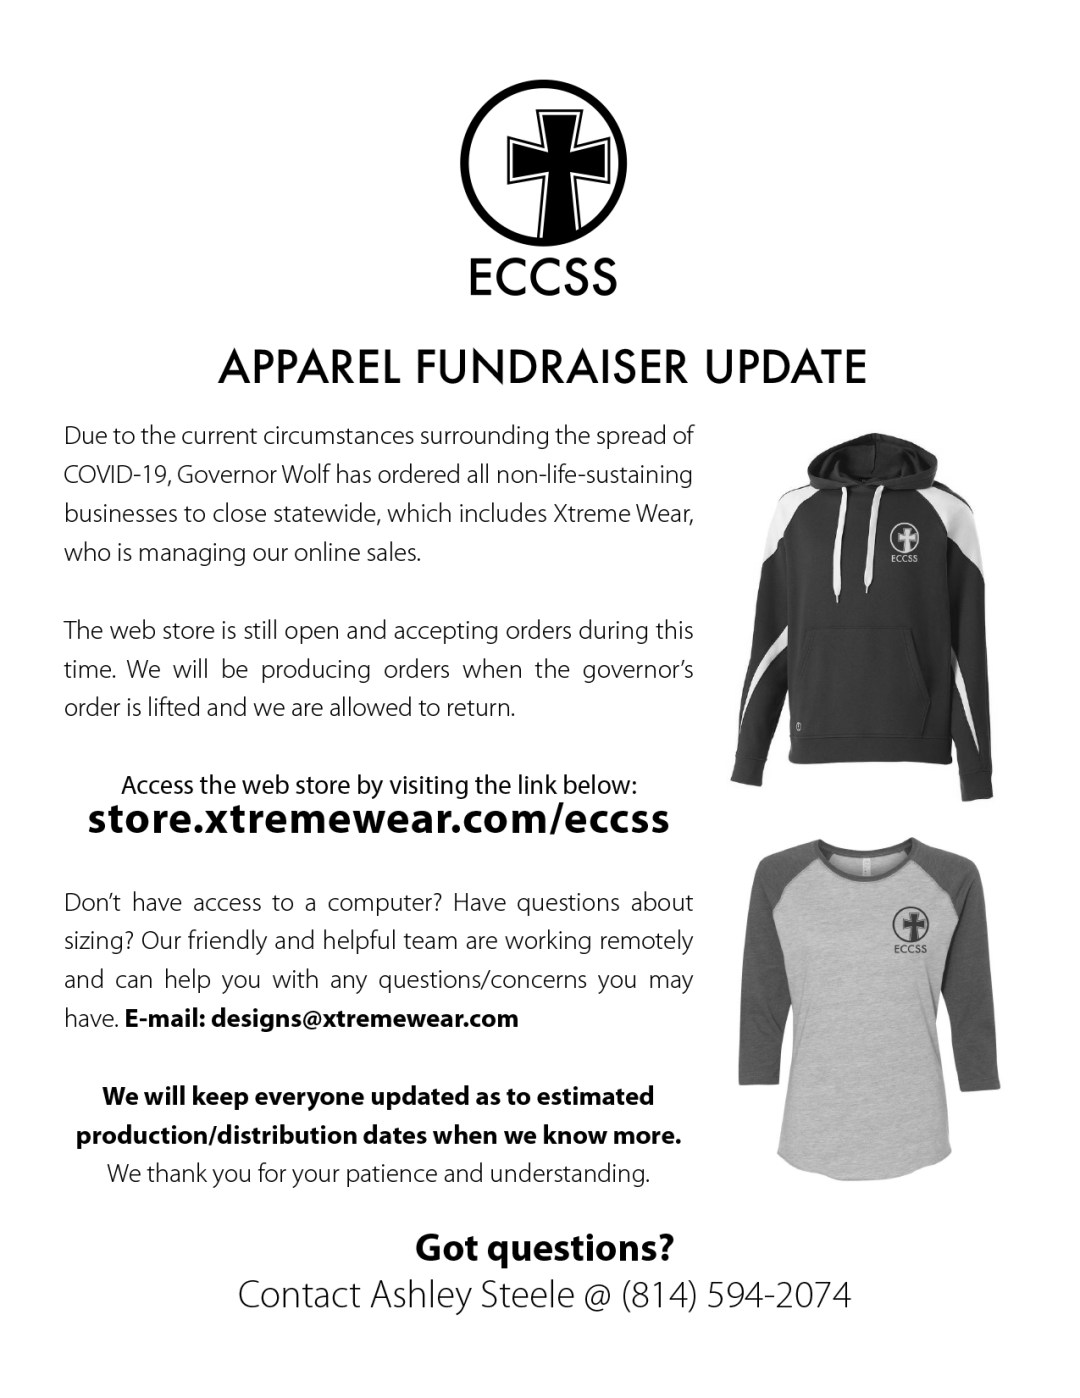 ECCSS PTO Clothing Order Update